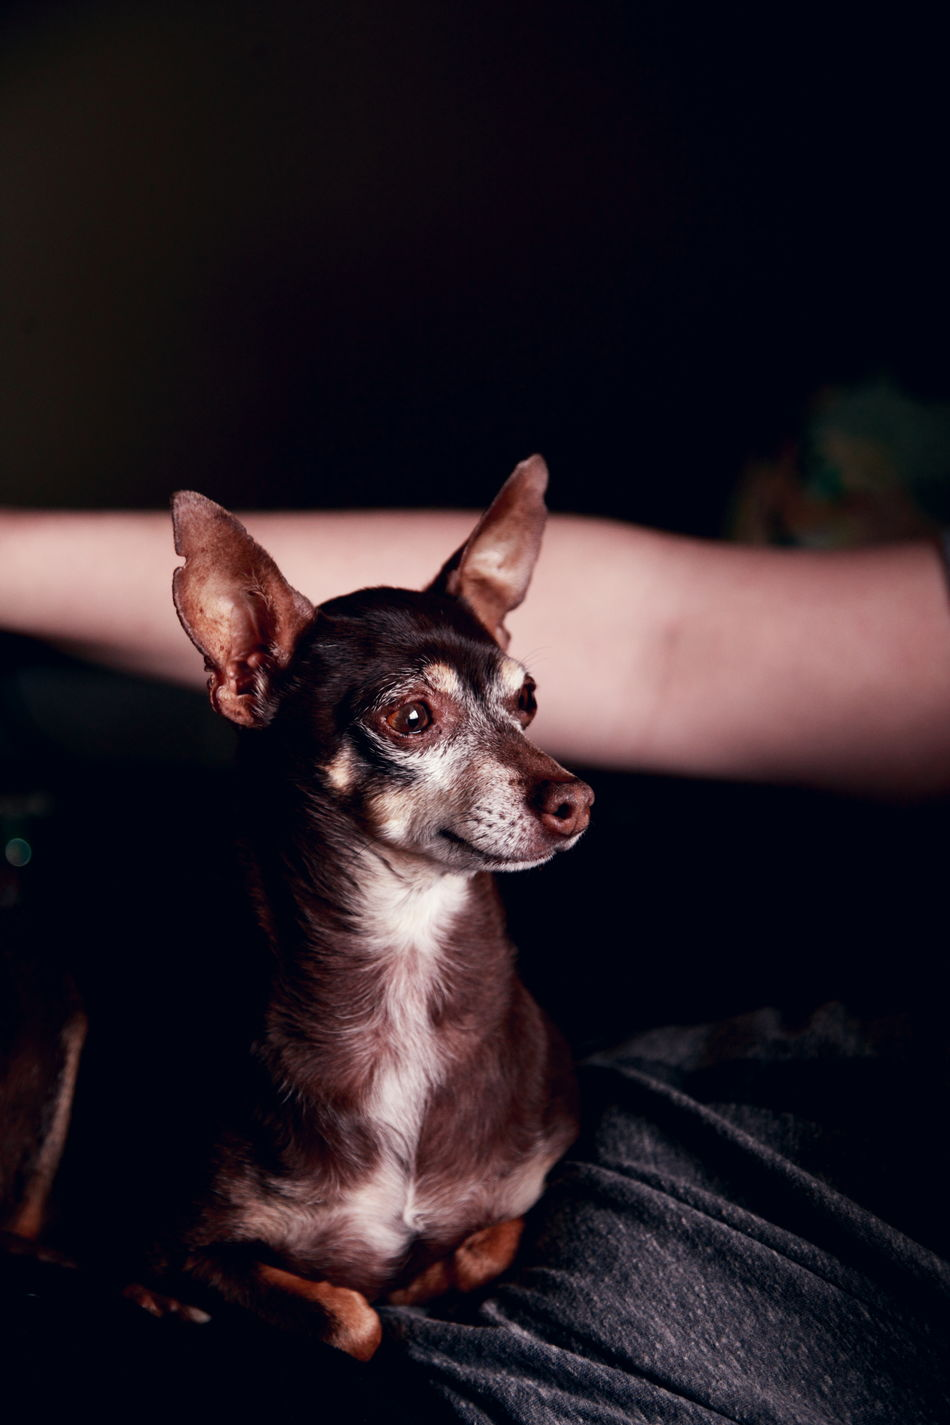 Our rescue dog, Marley. We love him very much. He is our baby. Adorable Alertness Animal Themes Chihuahua Cute Pets Dog Family Indoors  Little Love Loyalty One Animal Pets Portrait Rescue Sitting